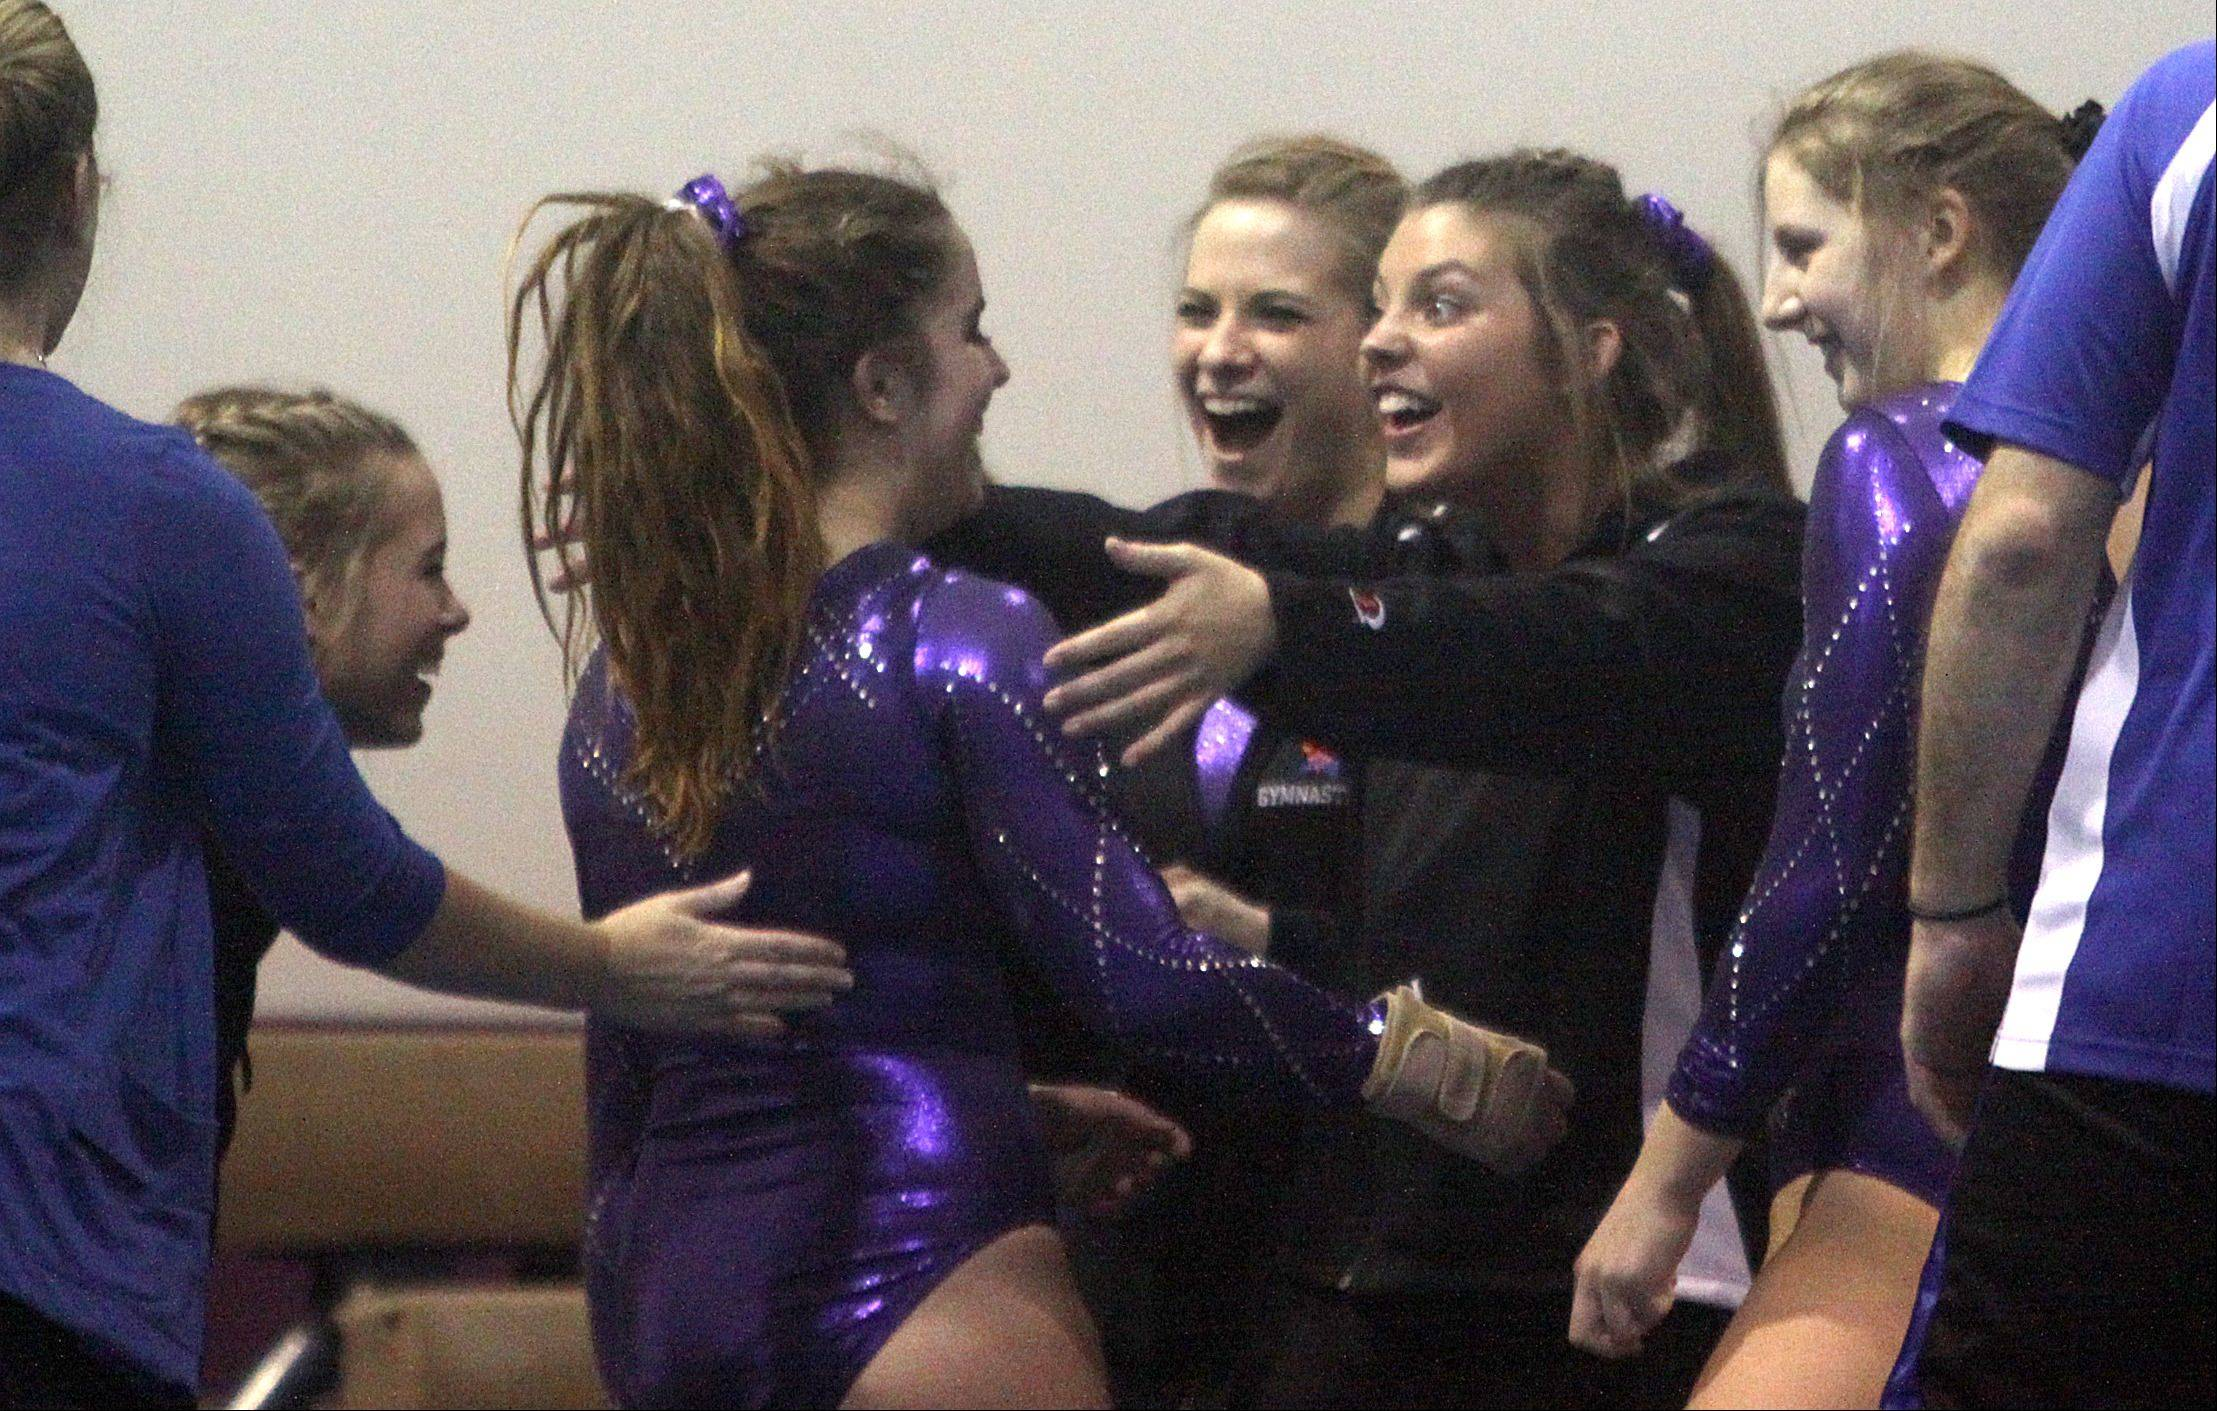 St. Charles co-op gymnasts congratulate teammate Alix Scherer, center, after Scherer completed a beam routine during a gymnastics meet at St. Charles Gymnastics Academy on Monday night.